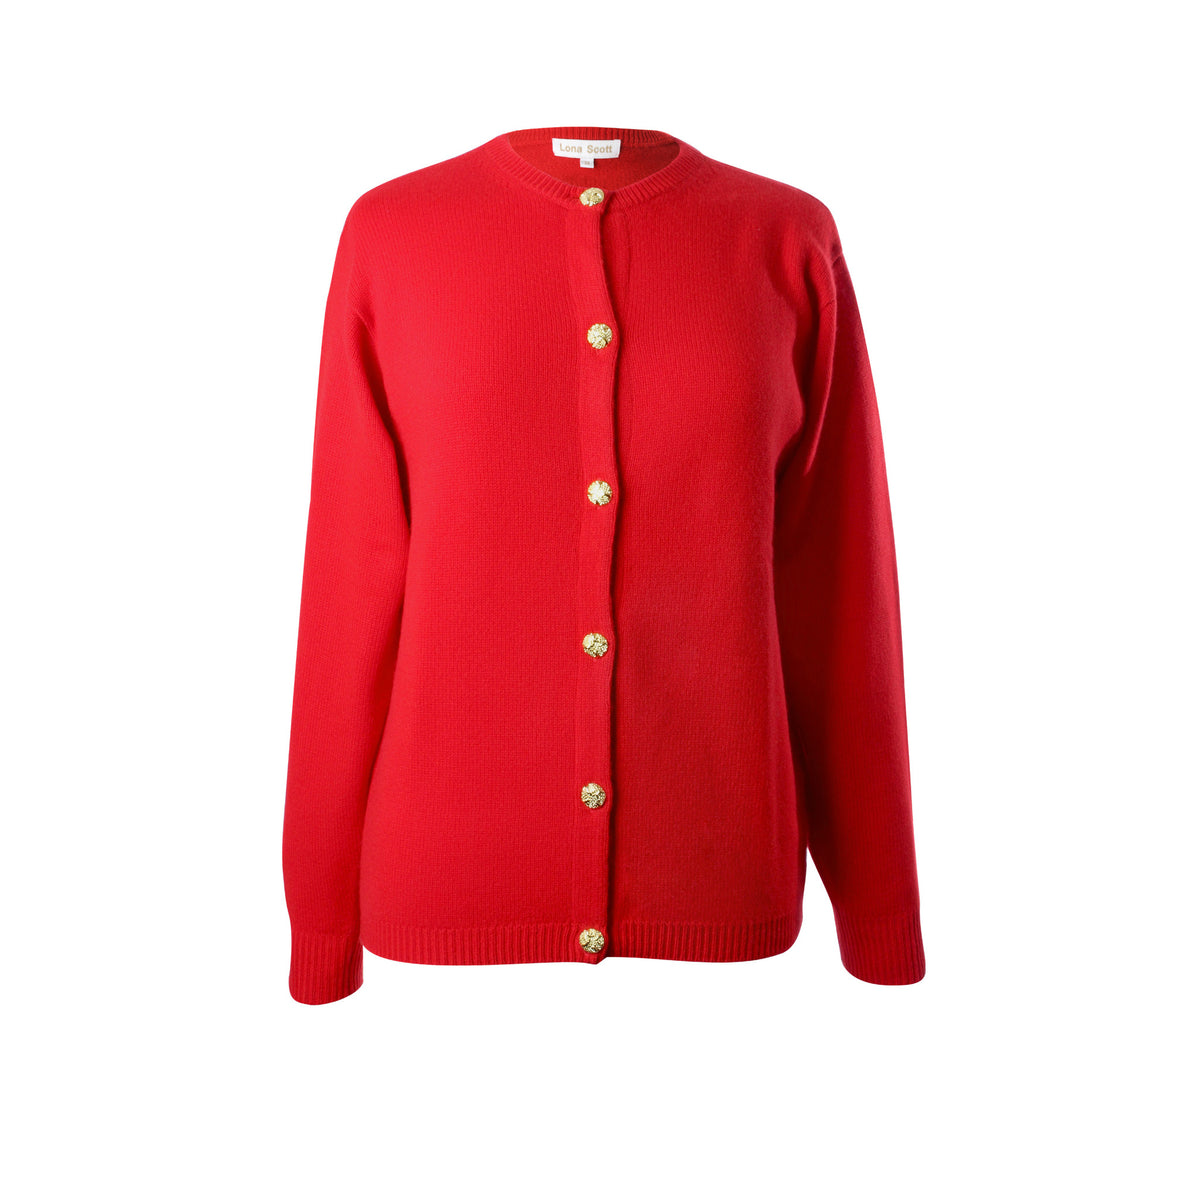 Ladies 3-Ply Cashmere Cardigan | Red | Shop at The Cashmere Choice | London